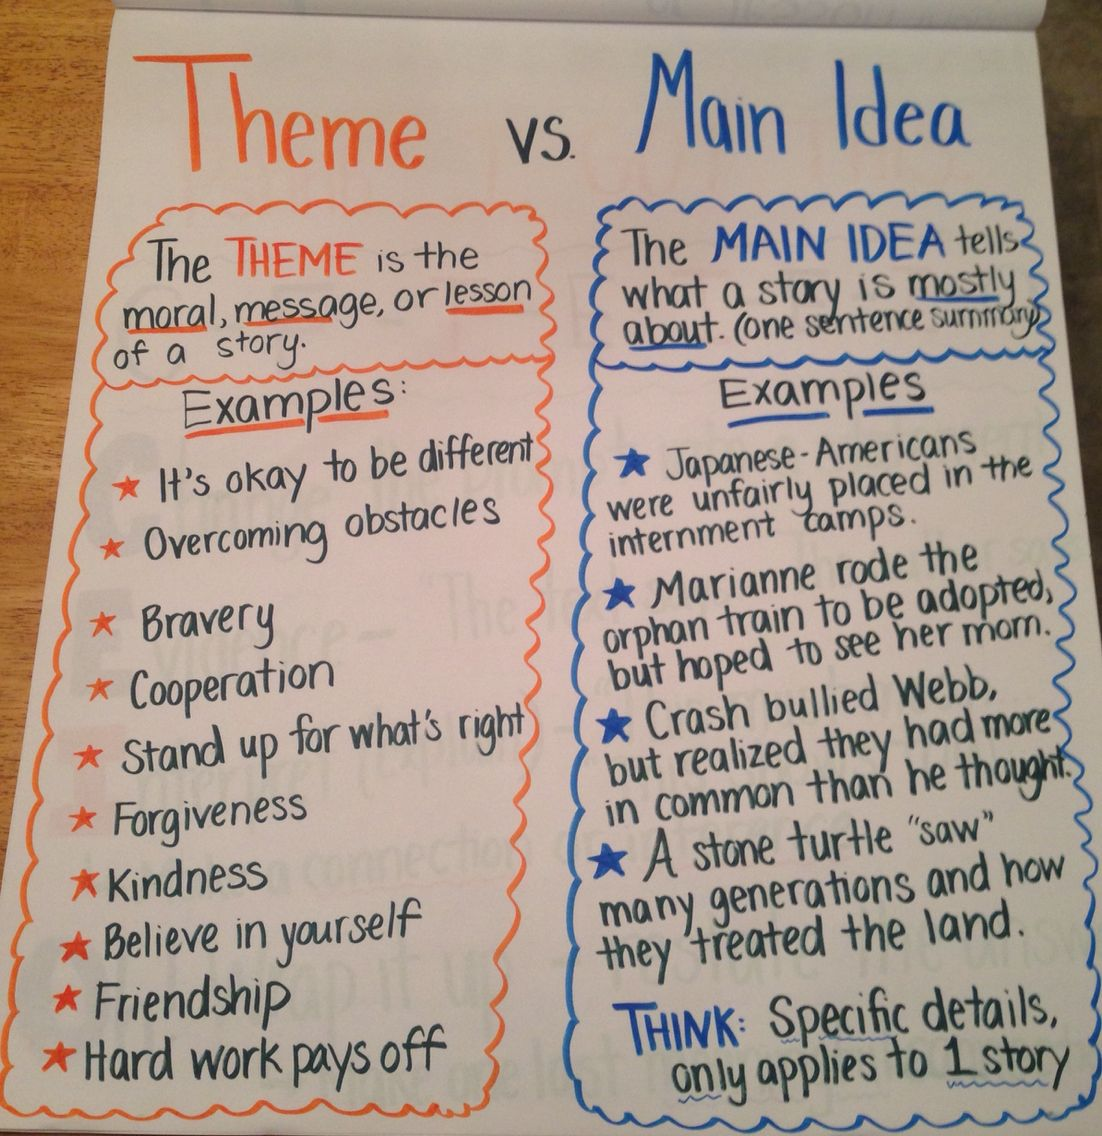 Theme Vs Main Idea